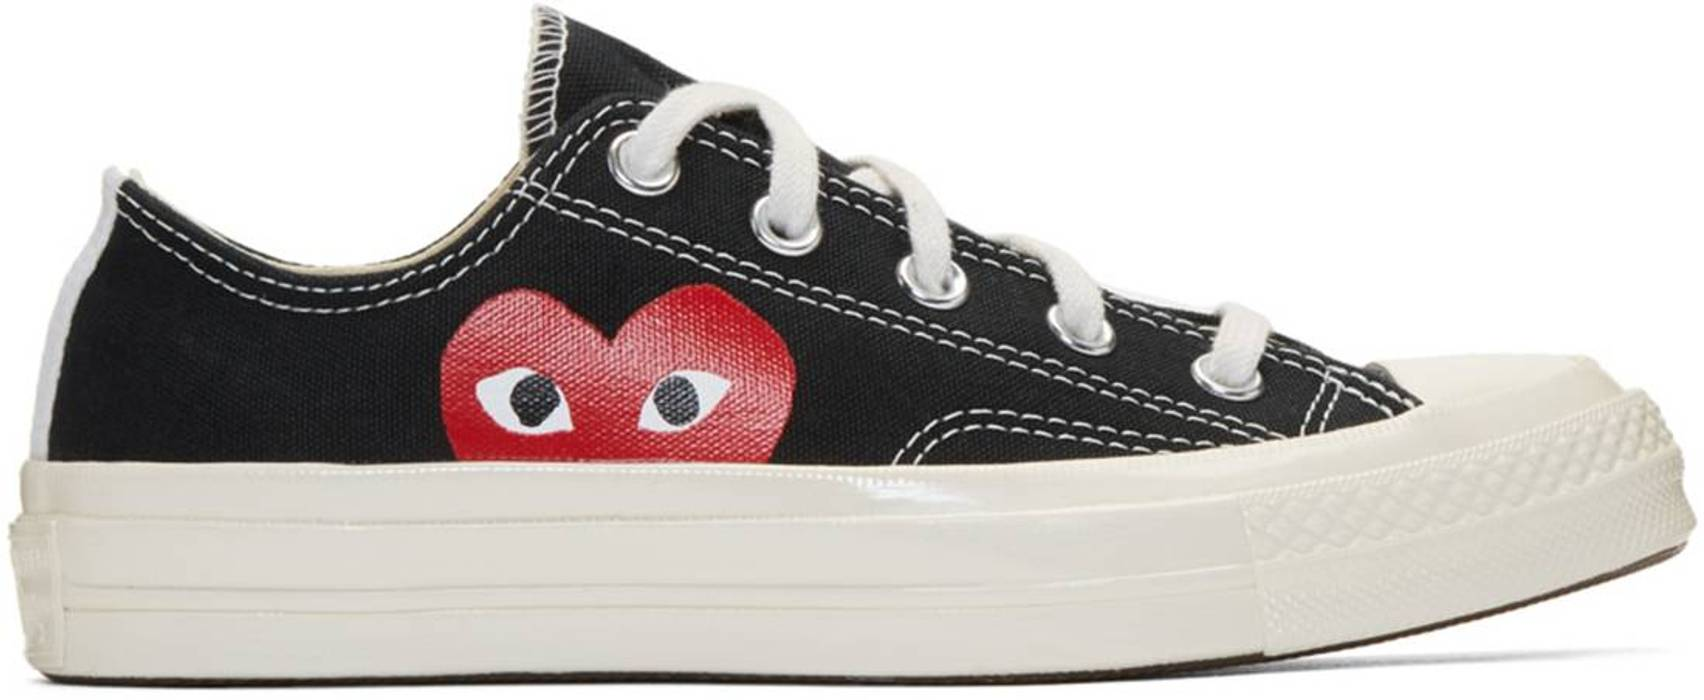 ccd8fe18a2f1 Converse CDG PLAY x CONVERSE CHUCK TAYLOR BLACK LOW US 8 EUR 41 Size US 8